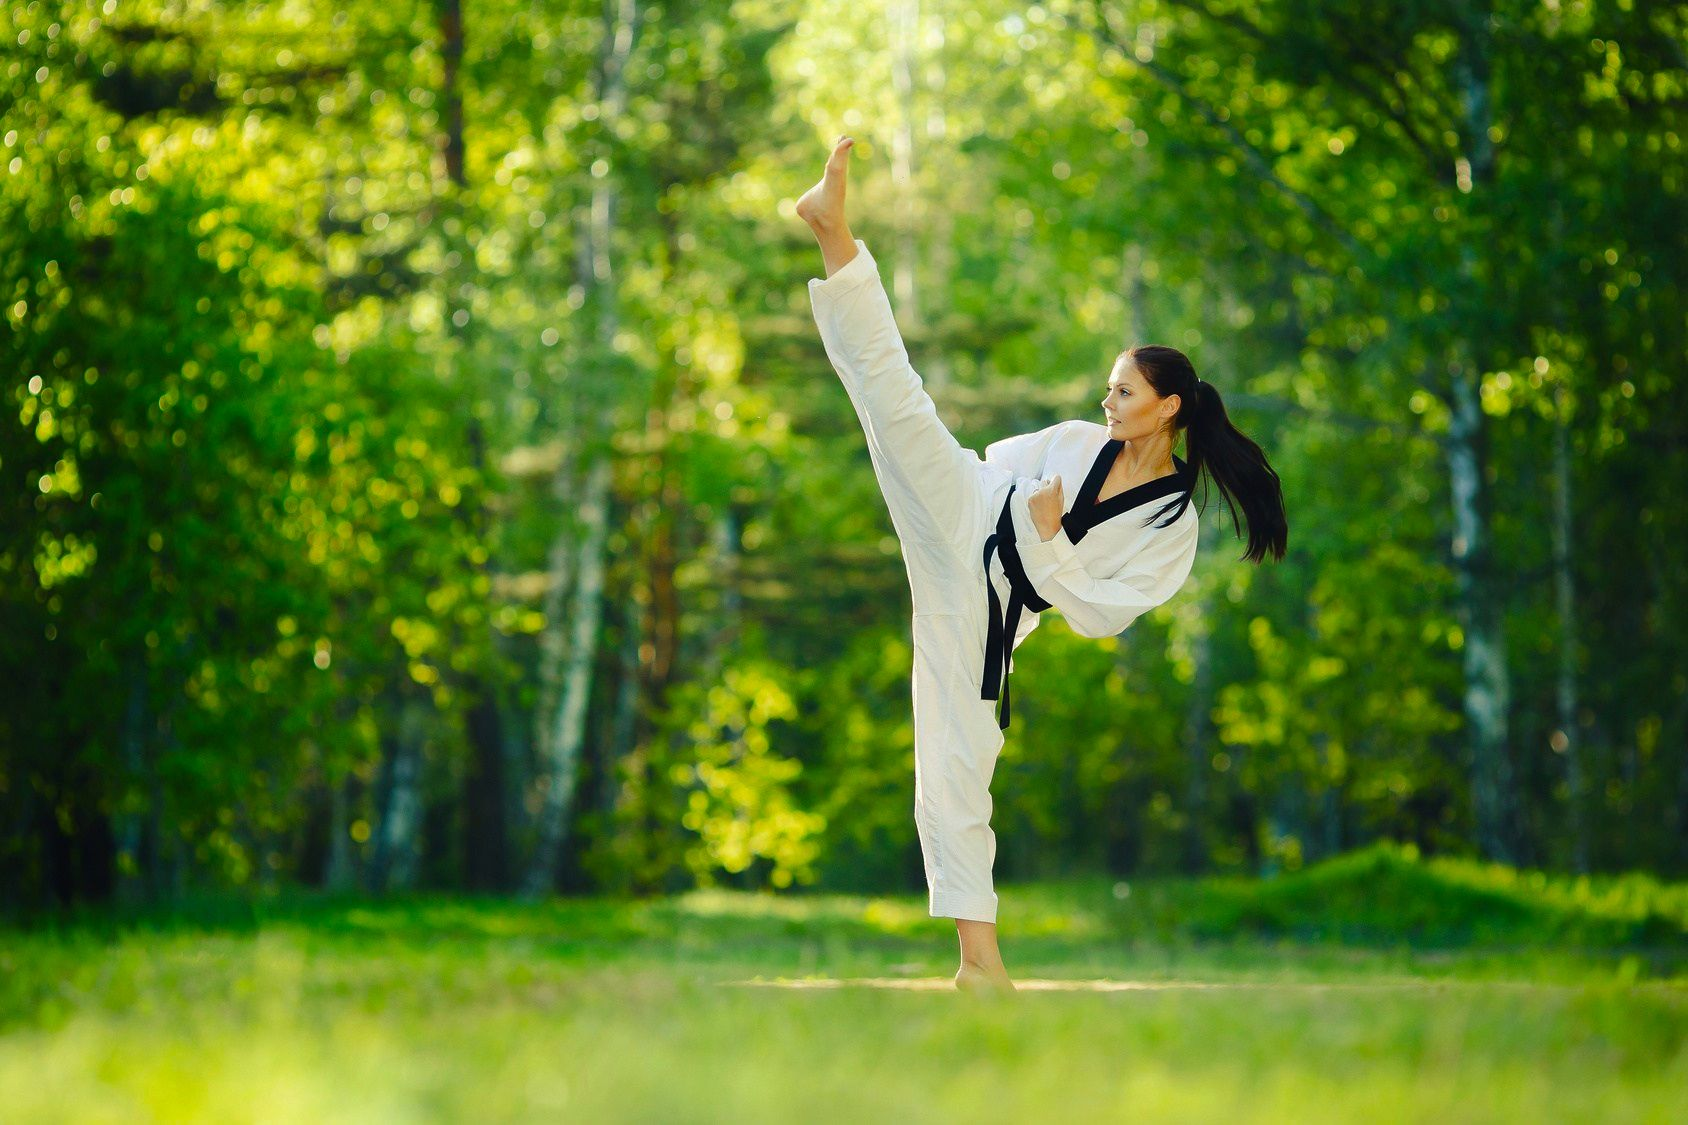 People who have indulged in practicing martial art have